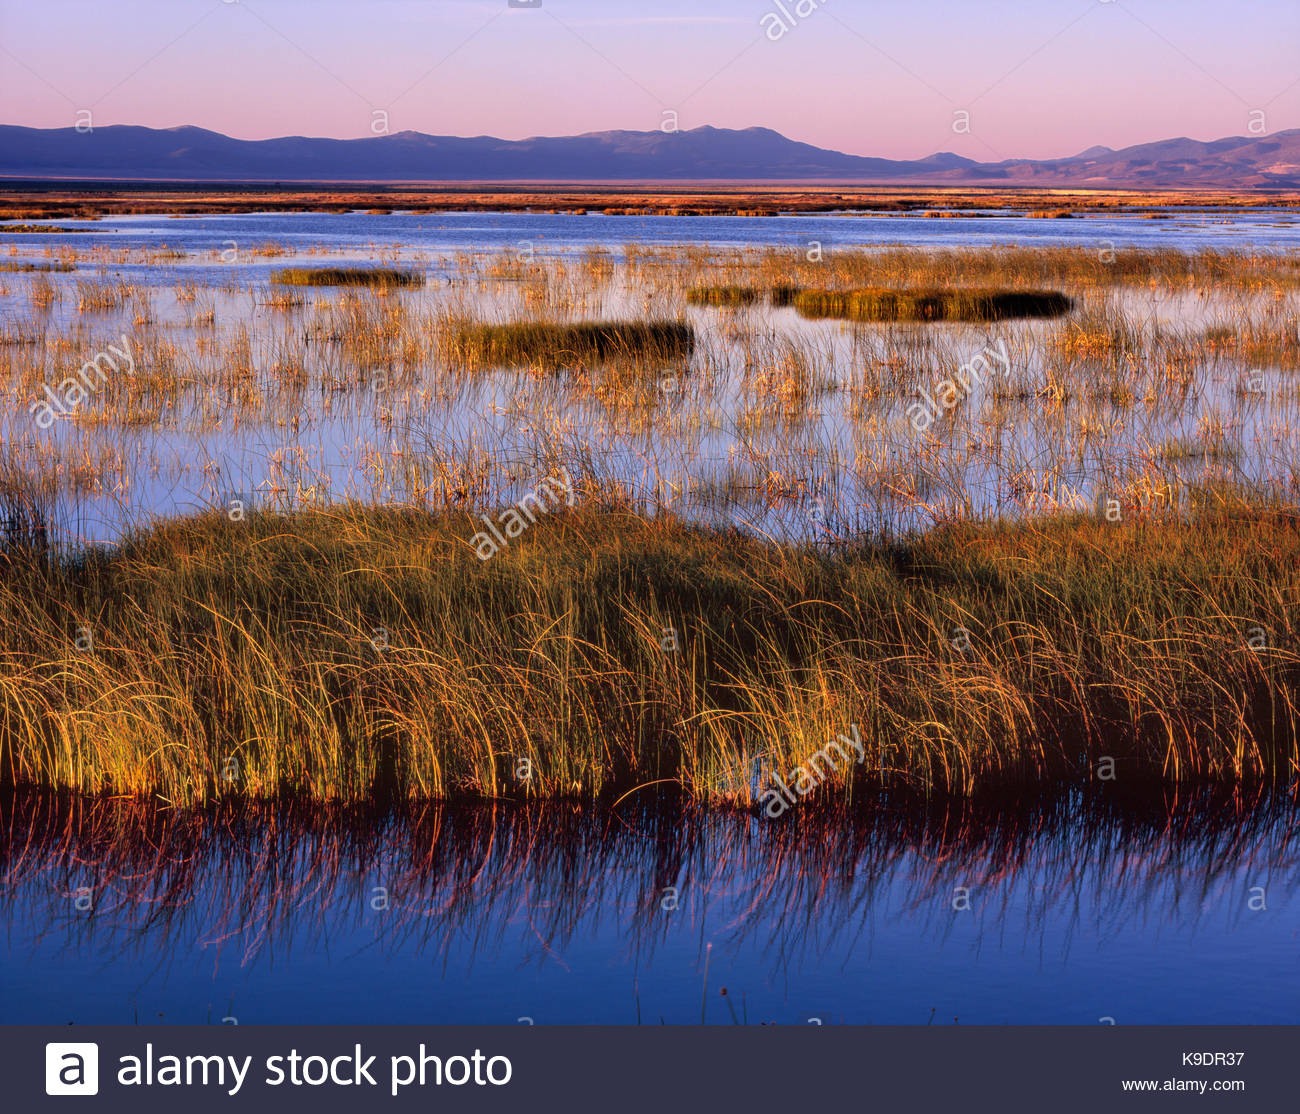 Sunrise, Ruby Lake National Wildlife Refuge, Nevada - Stock Image